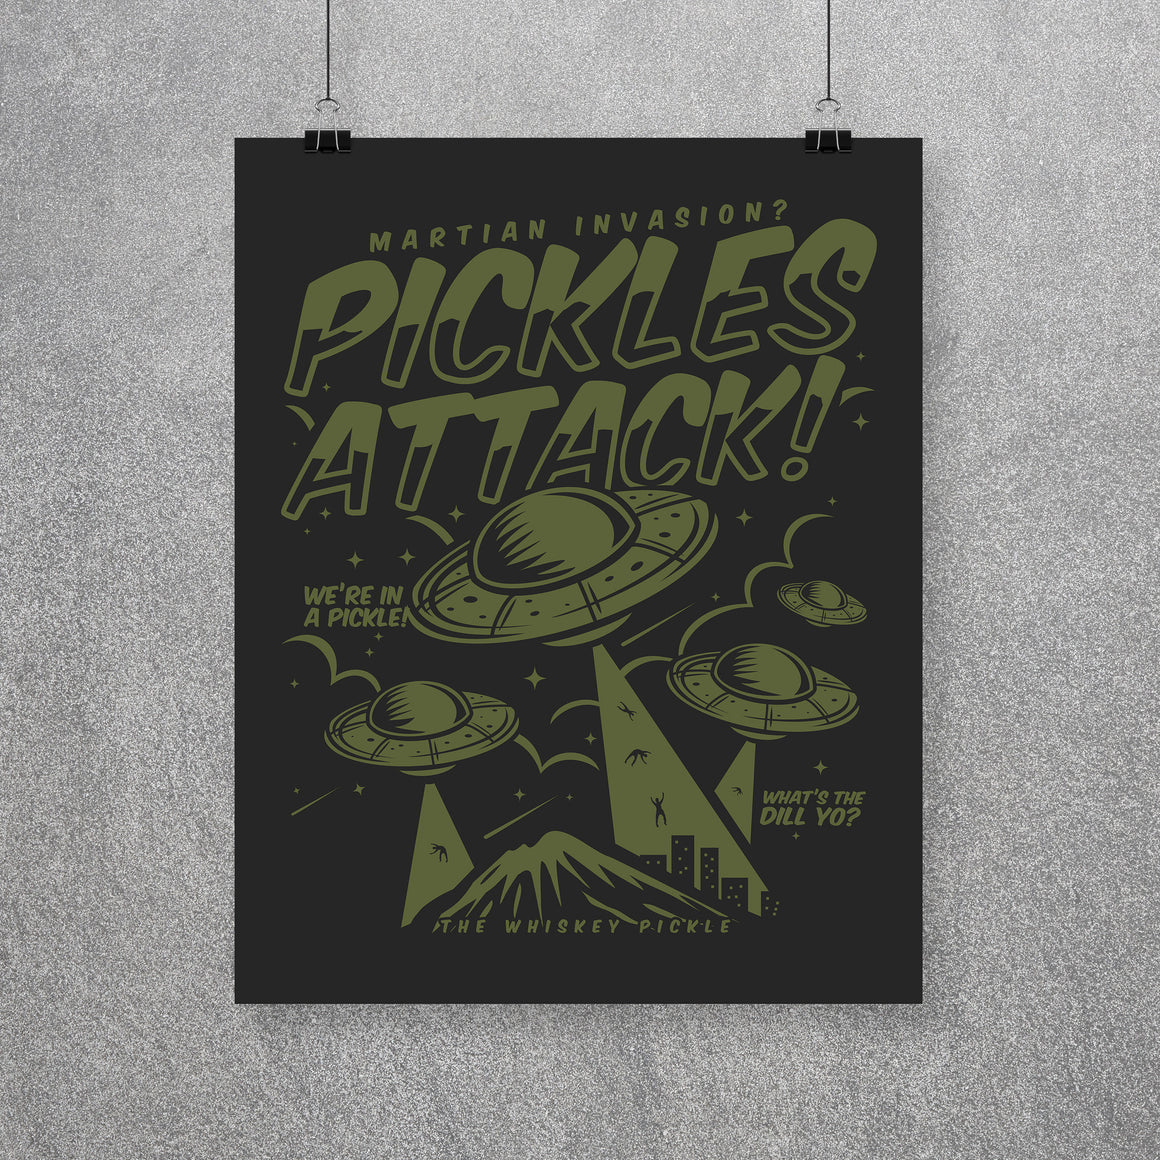 Pickle Shirts - Pickles Attack! Wall Art